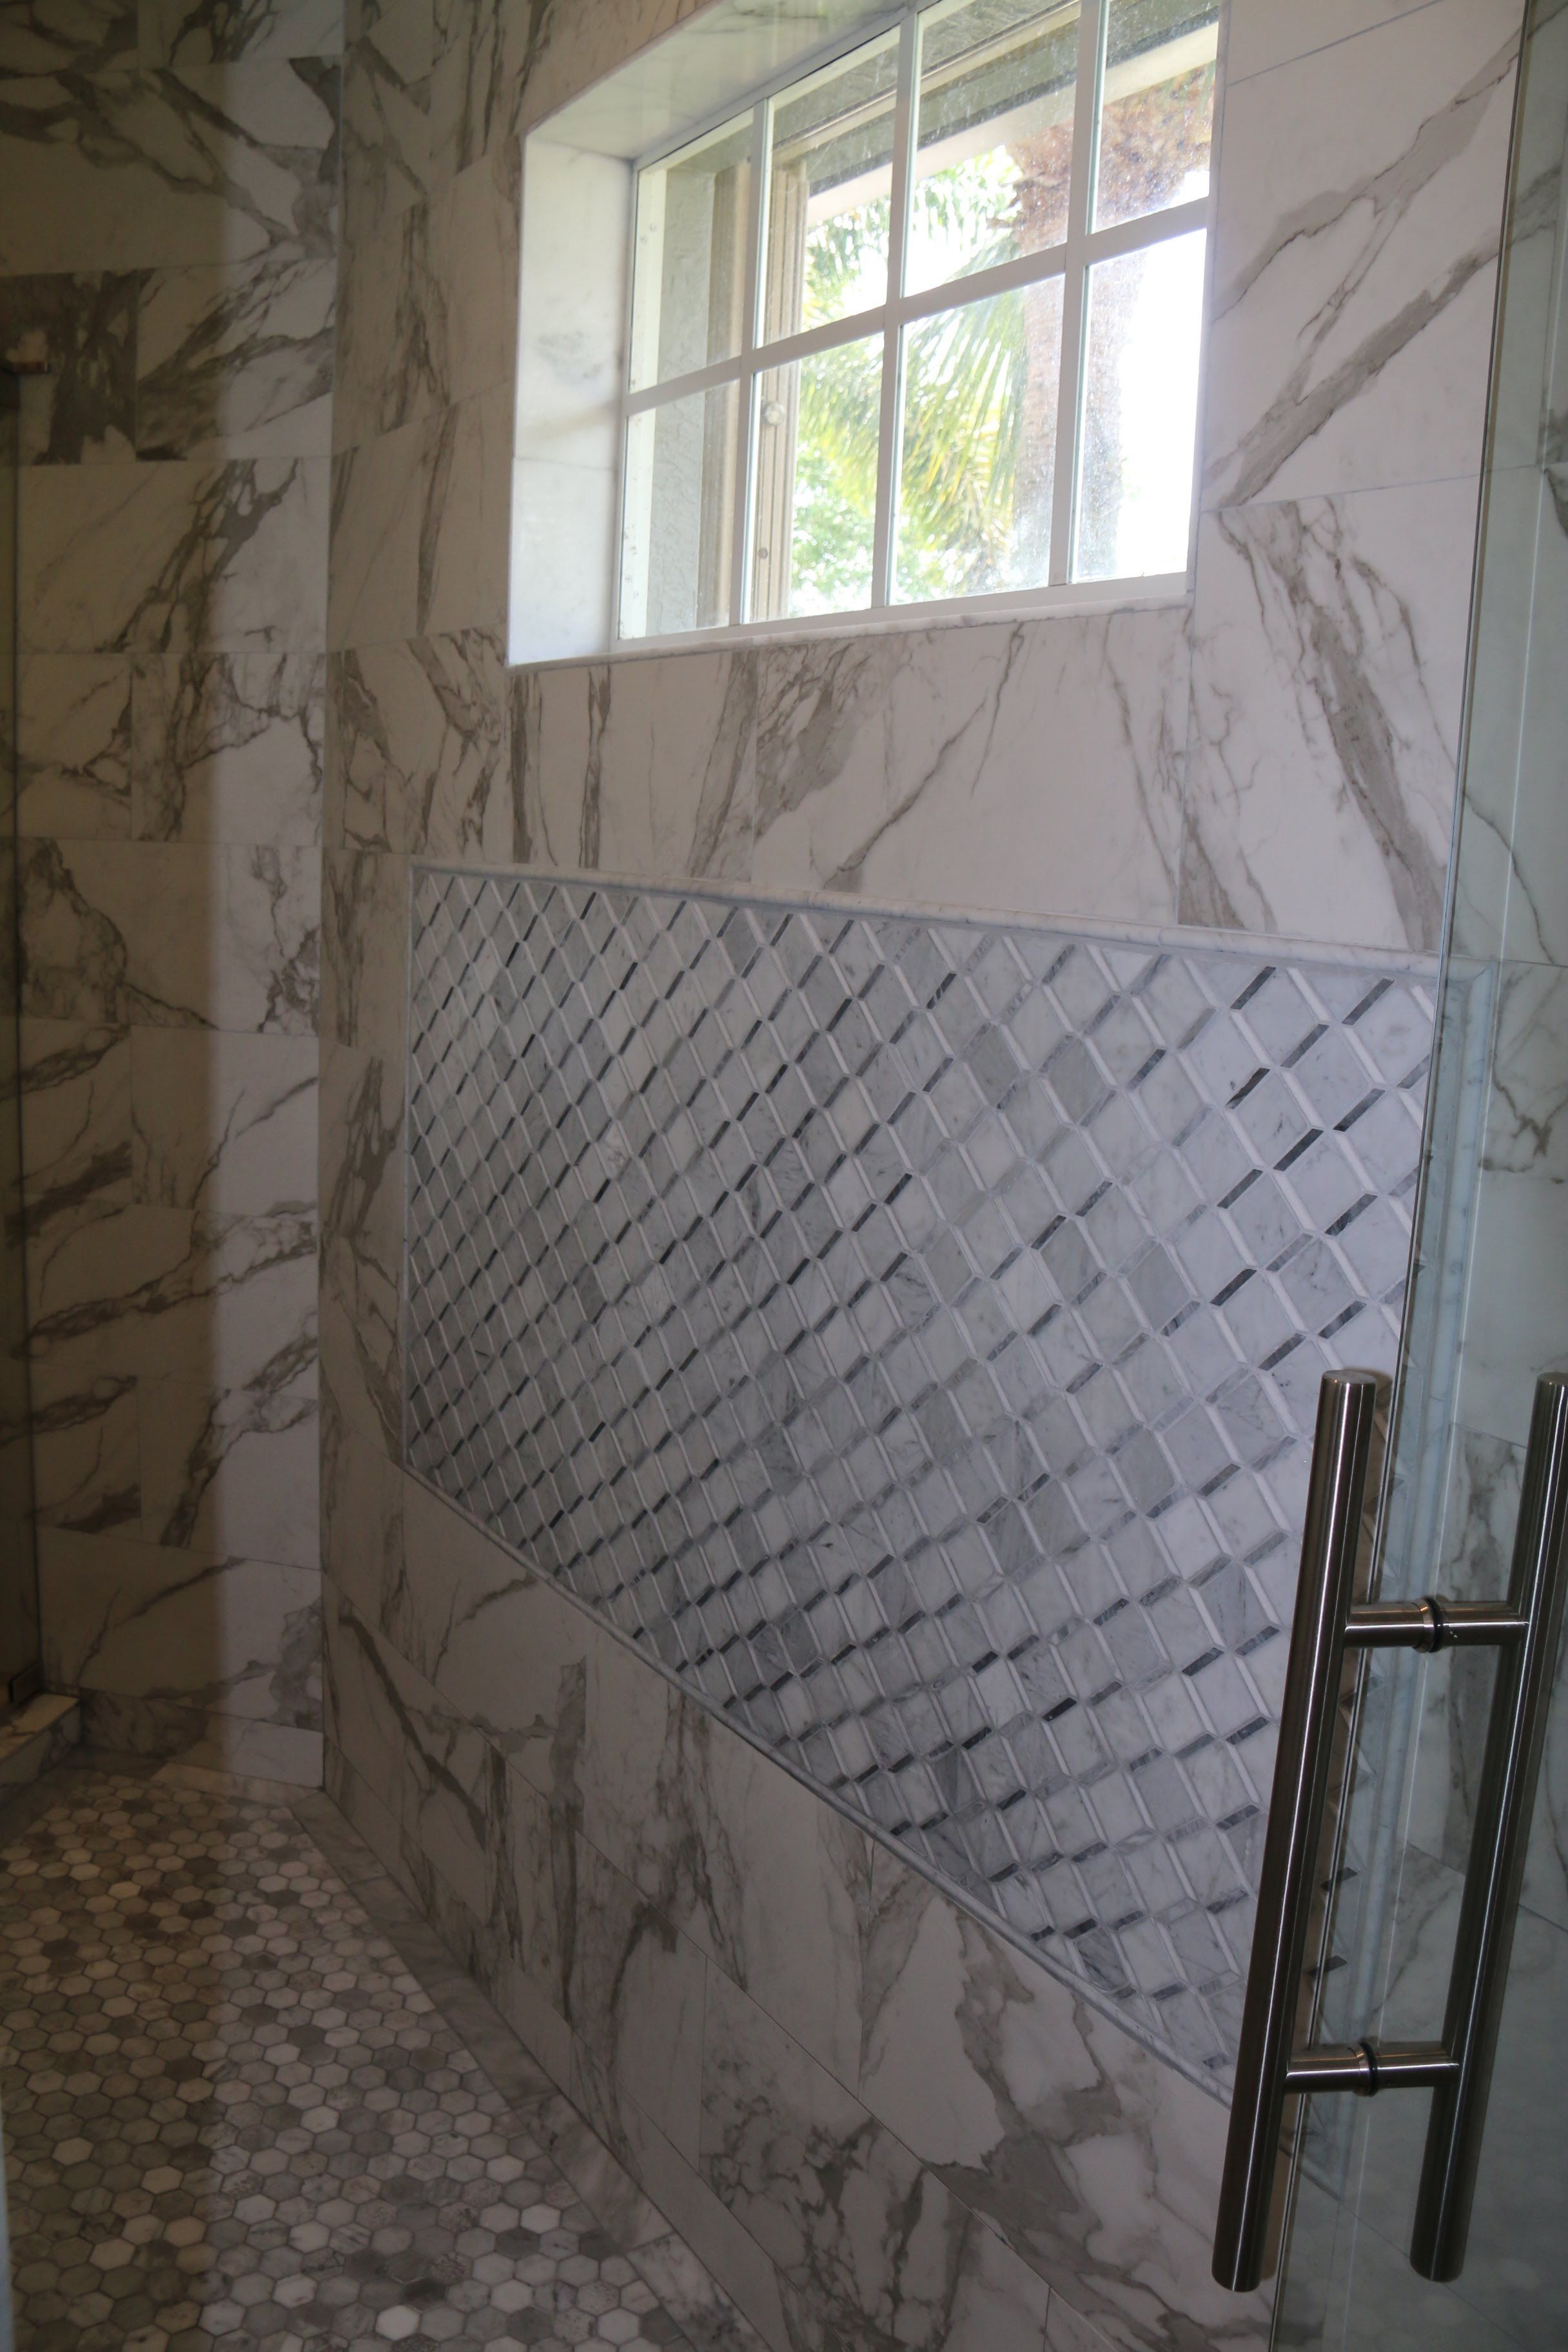 Carrara Thassos Cube Marble Mosaic Floor Decor In 2020 Marble Mosaic Marble Mosaic Floor Hall Decor